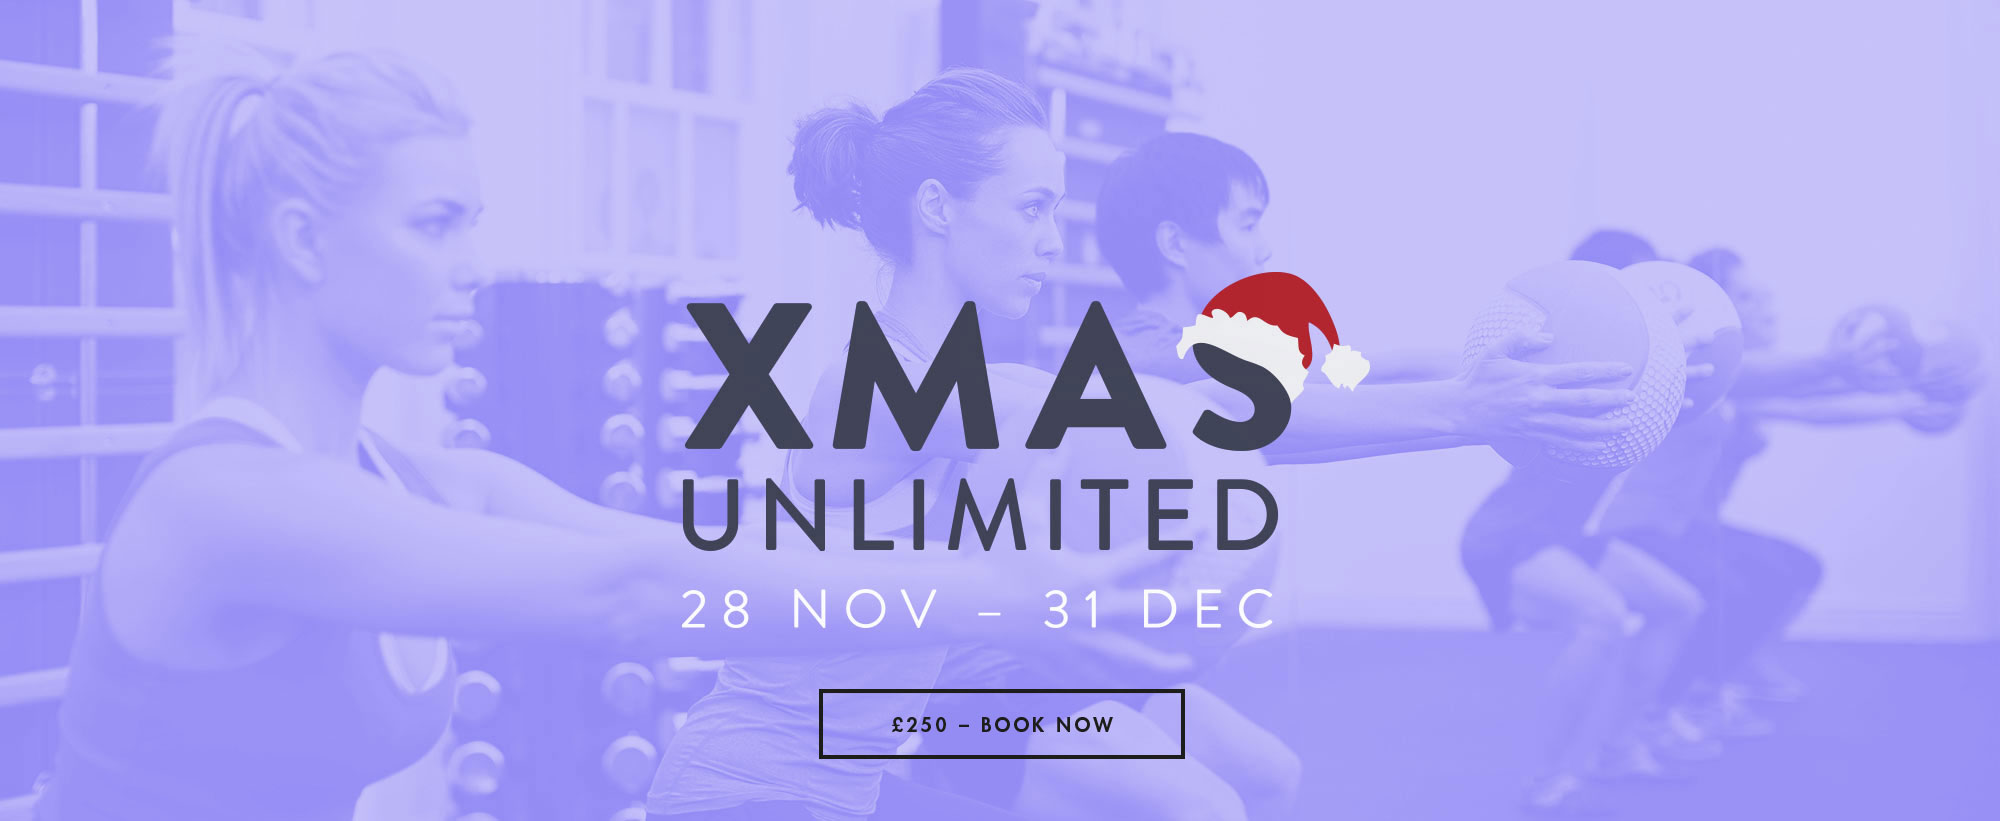 Xmas Unlimited